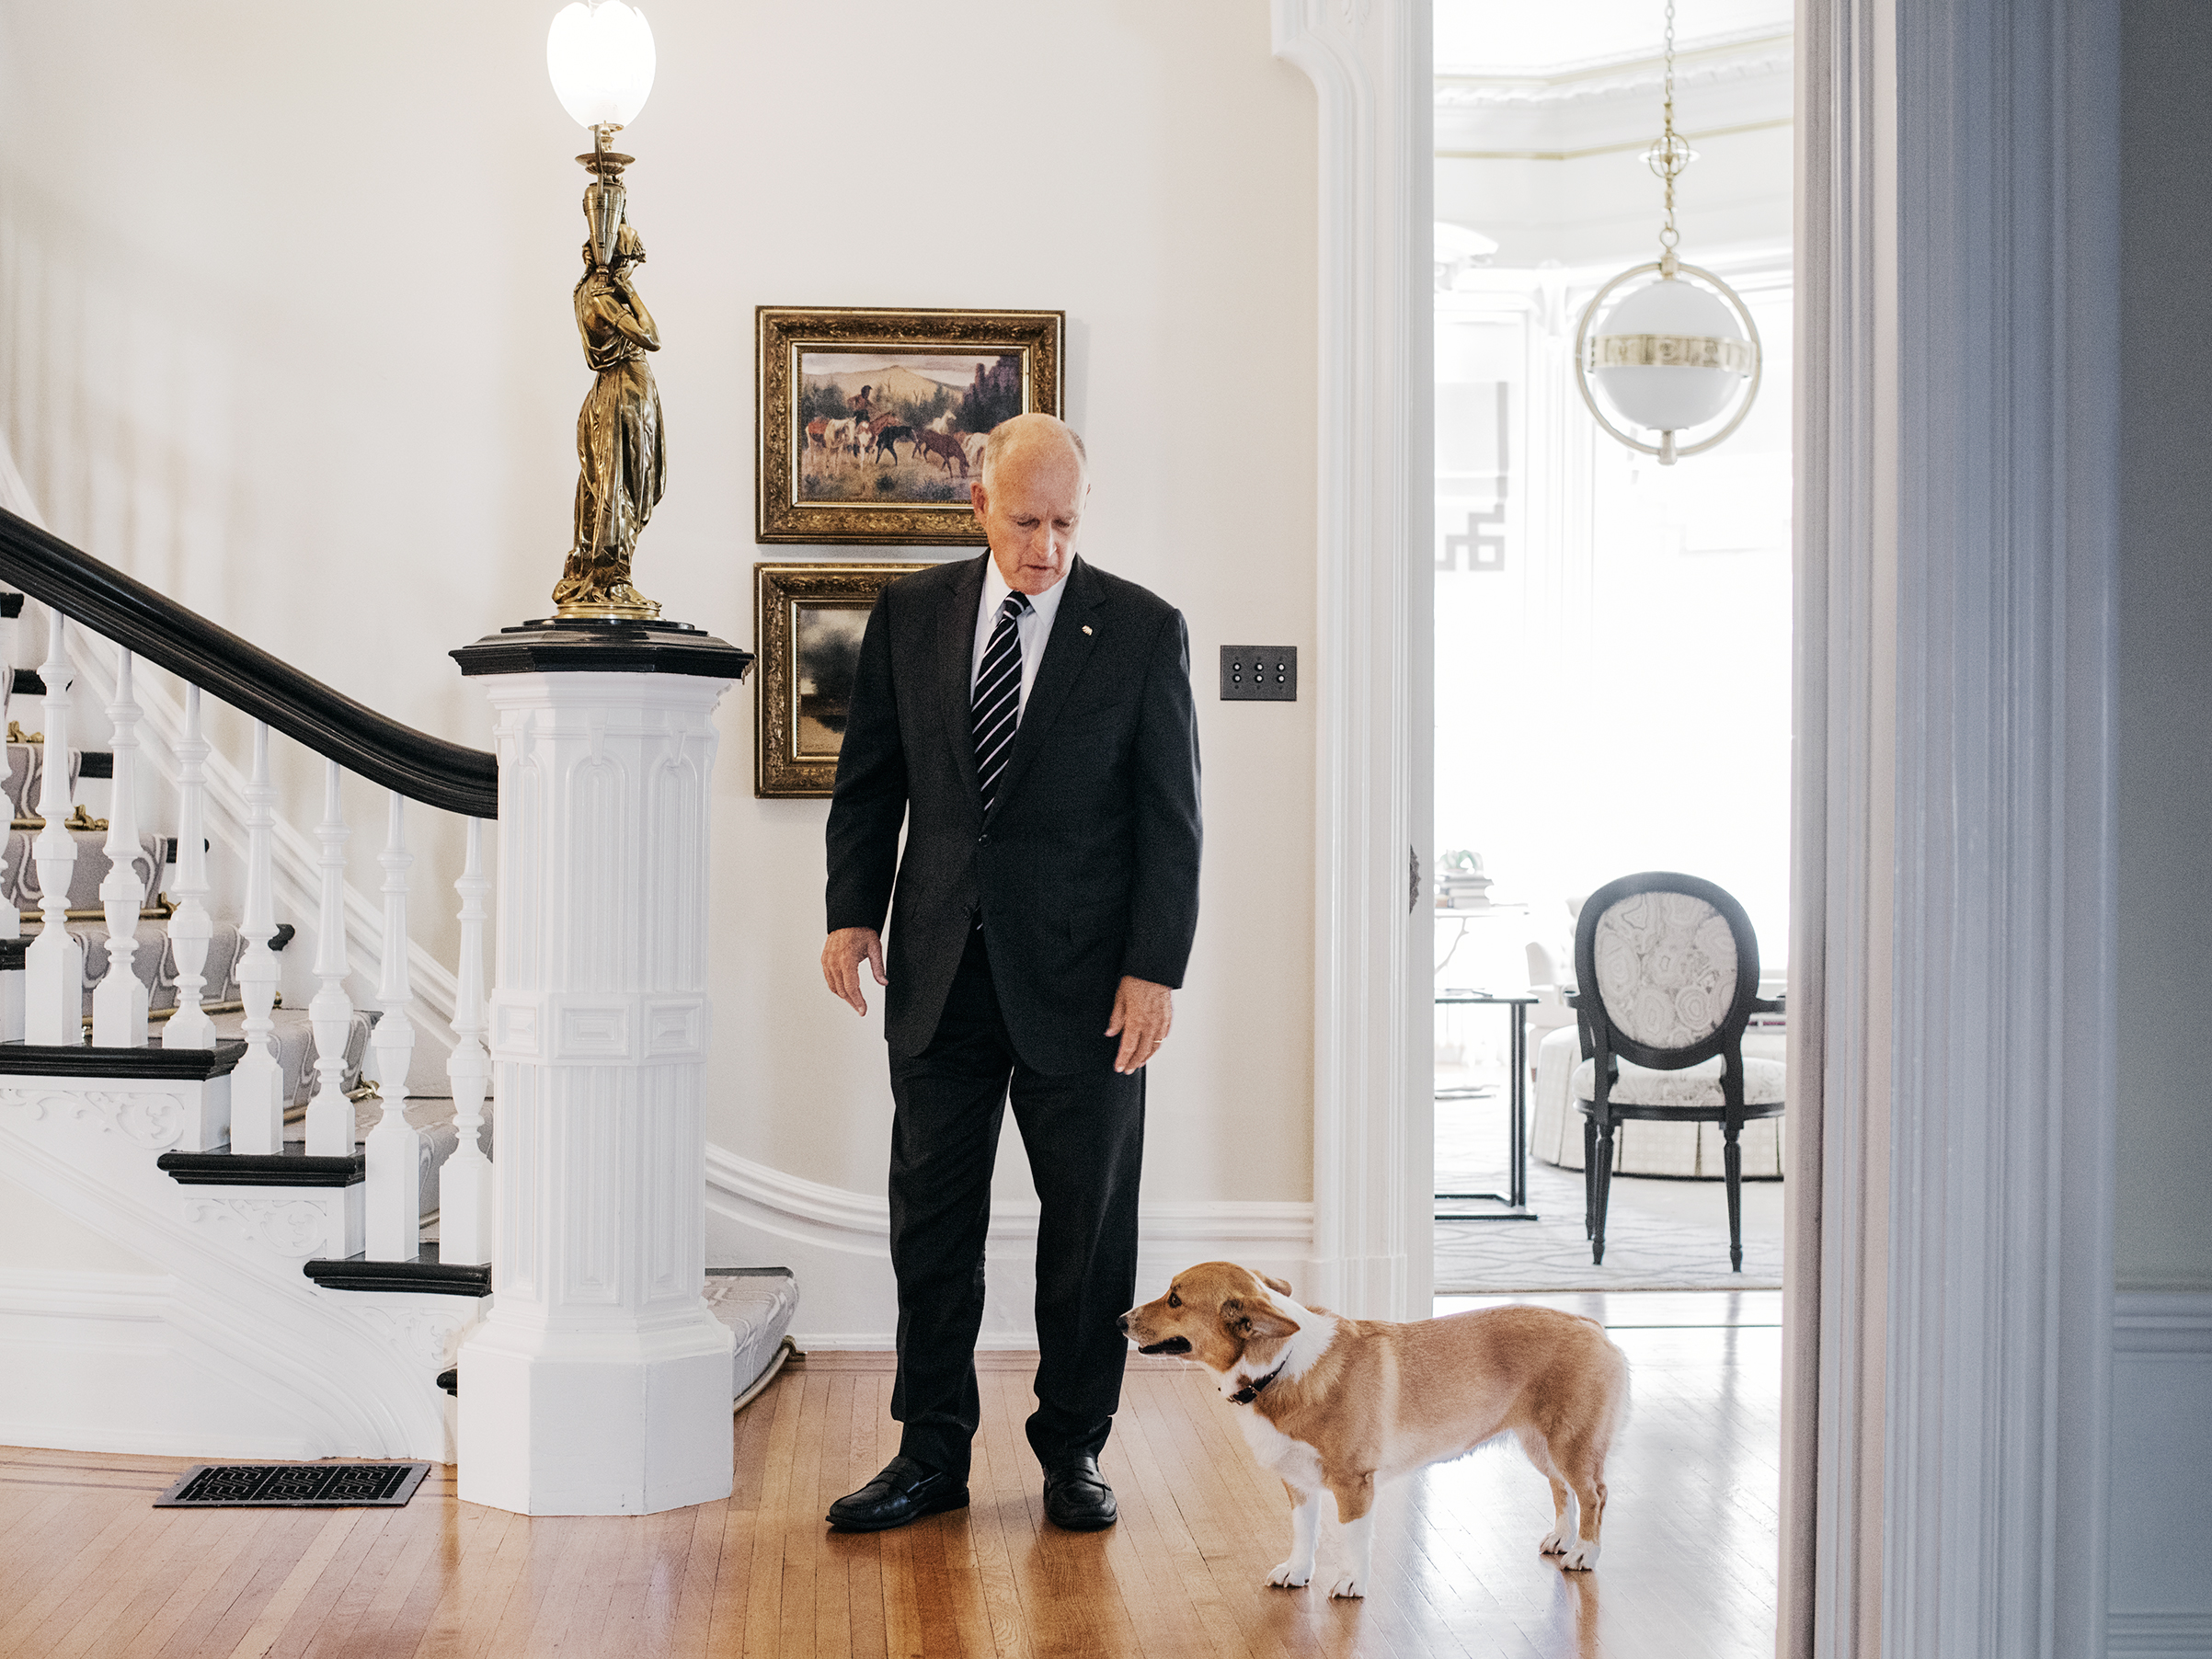 California Governor Jerry Brown, nearing the end of an unprecedented fourth term in office, stands in the governor's mansion in Sacramento